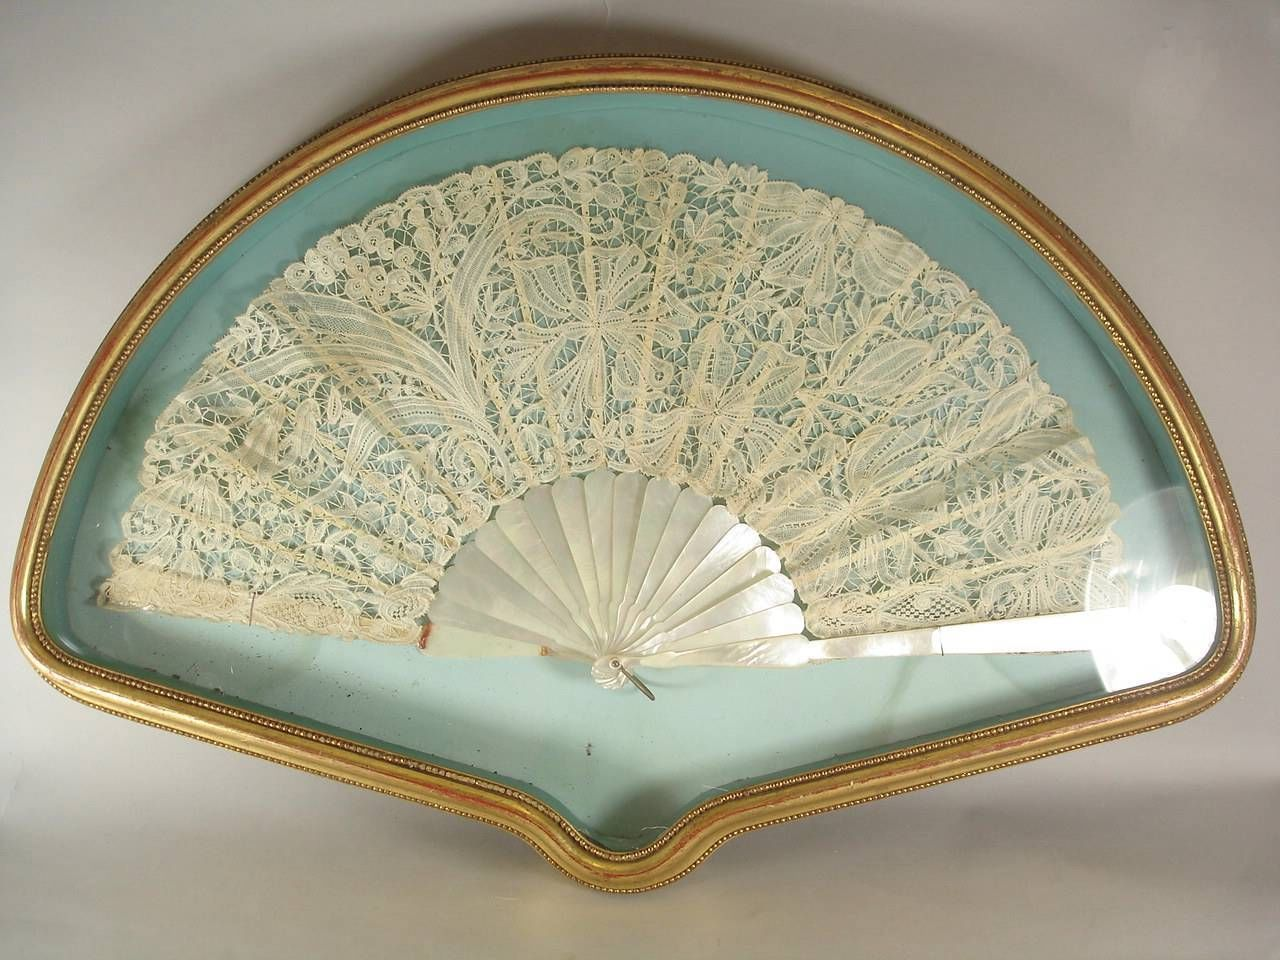 Exquisite 19th Century Mother of Pearl lace fan within a gilt shadow box.